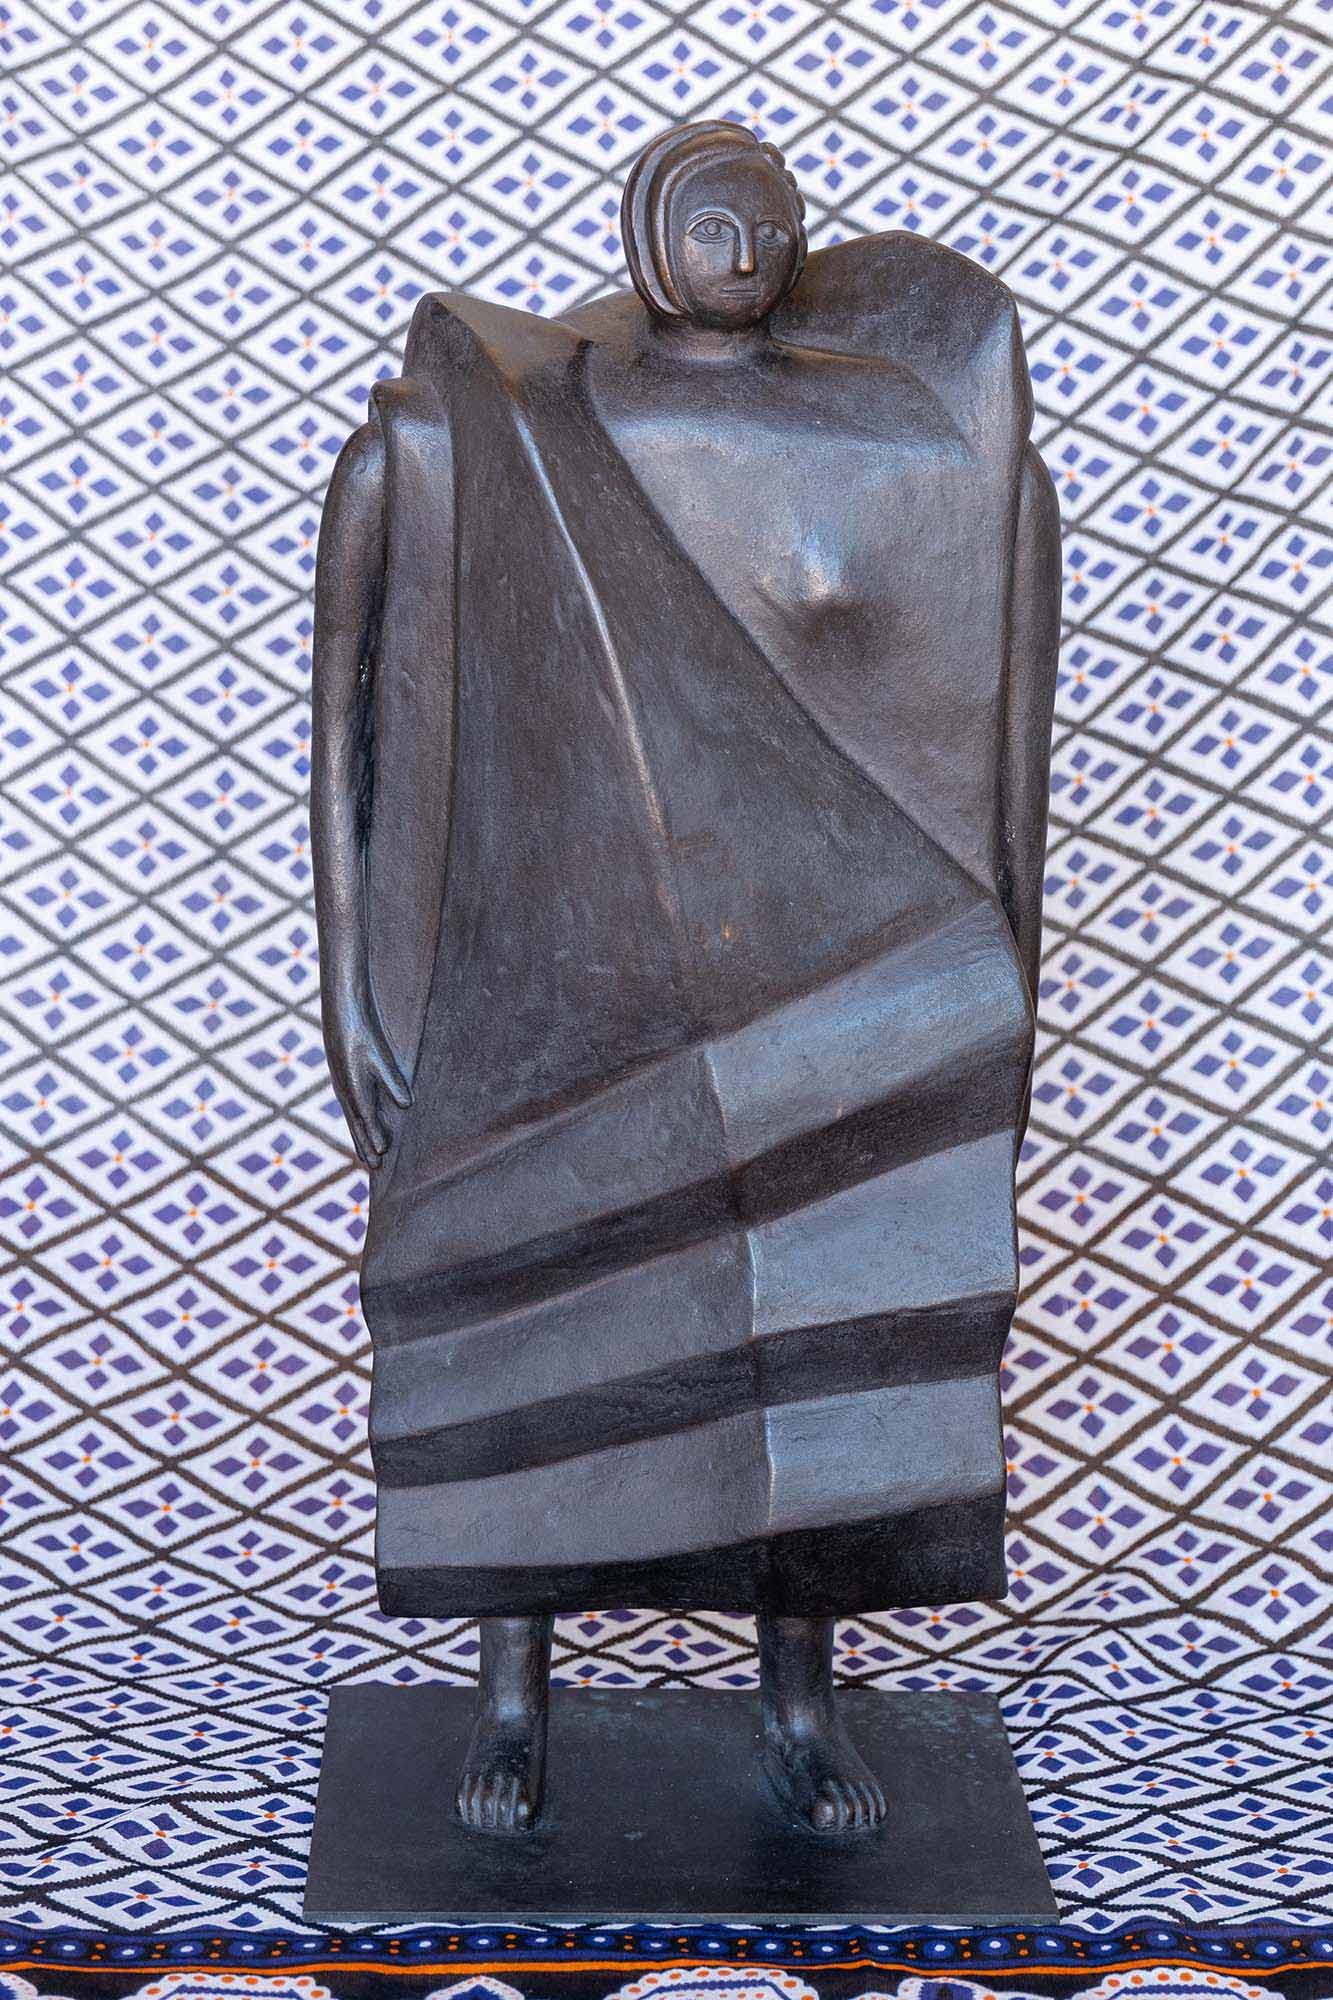 <em>Personaggio con gonna ondulata</em>, 1999, bronzo, 65x30x16cm